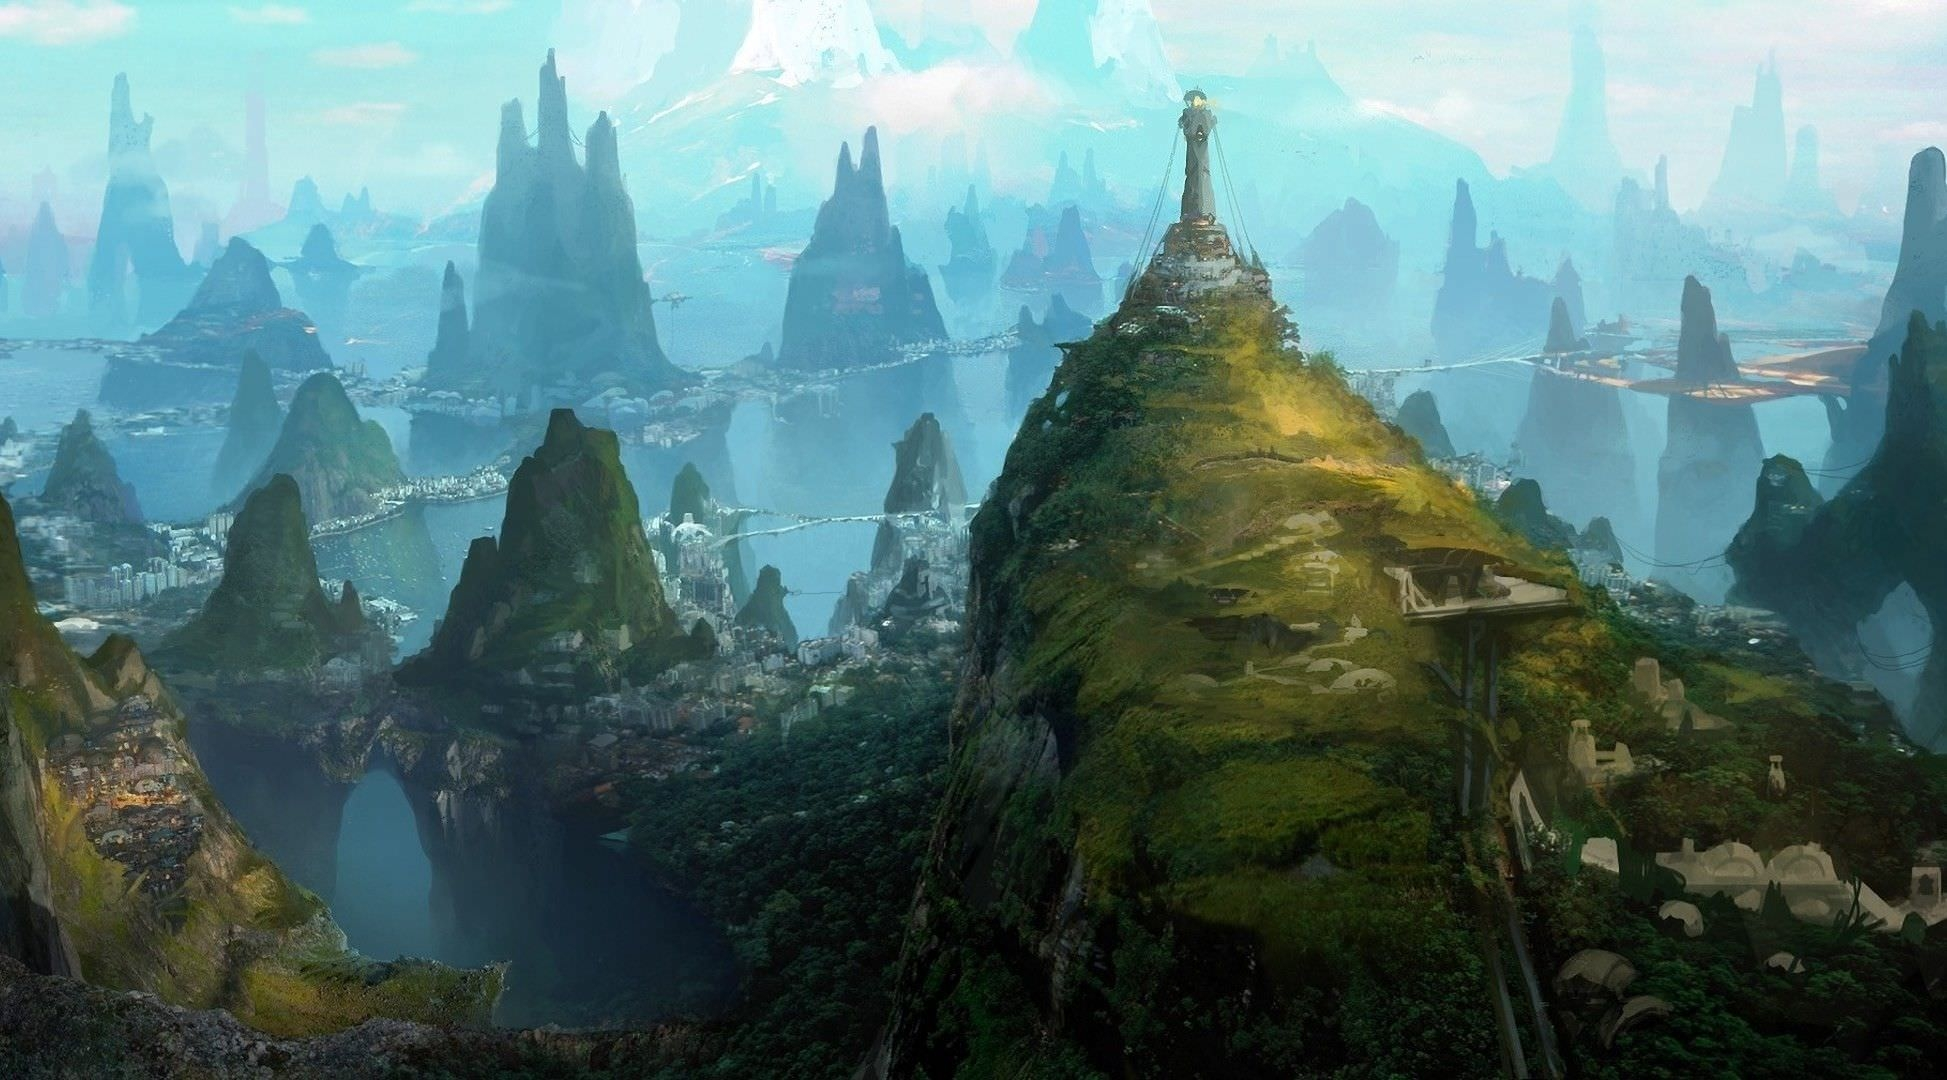 Fantasy Landscape City Wallpaper